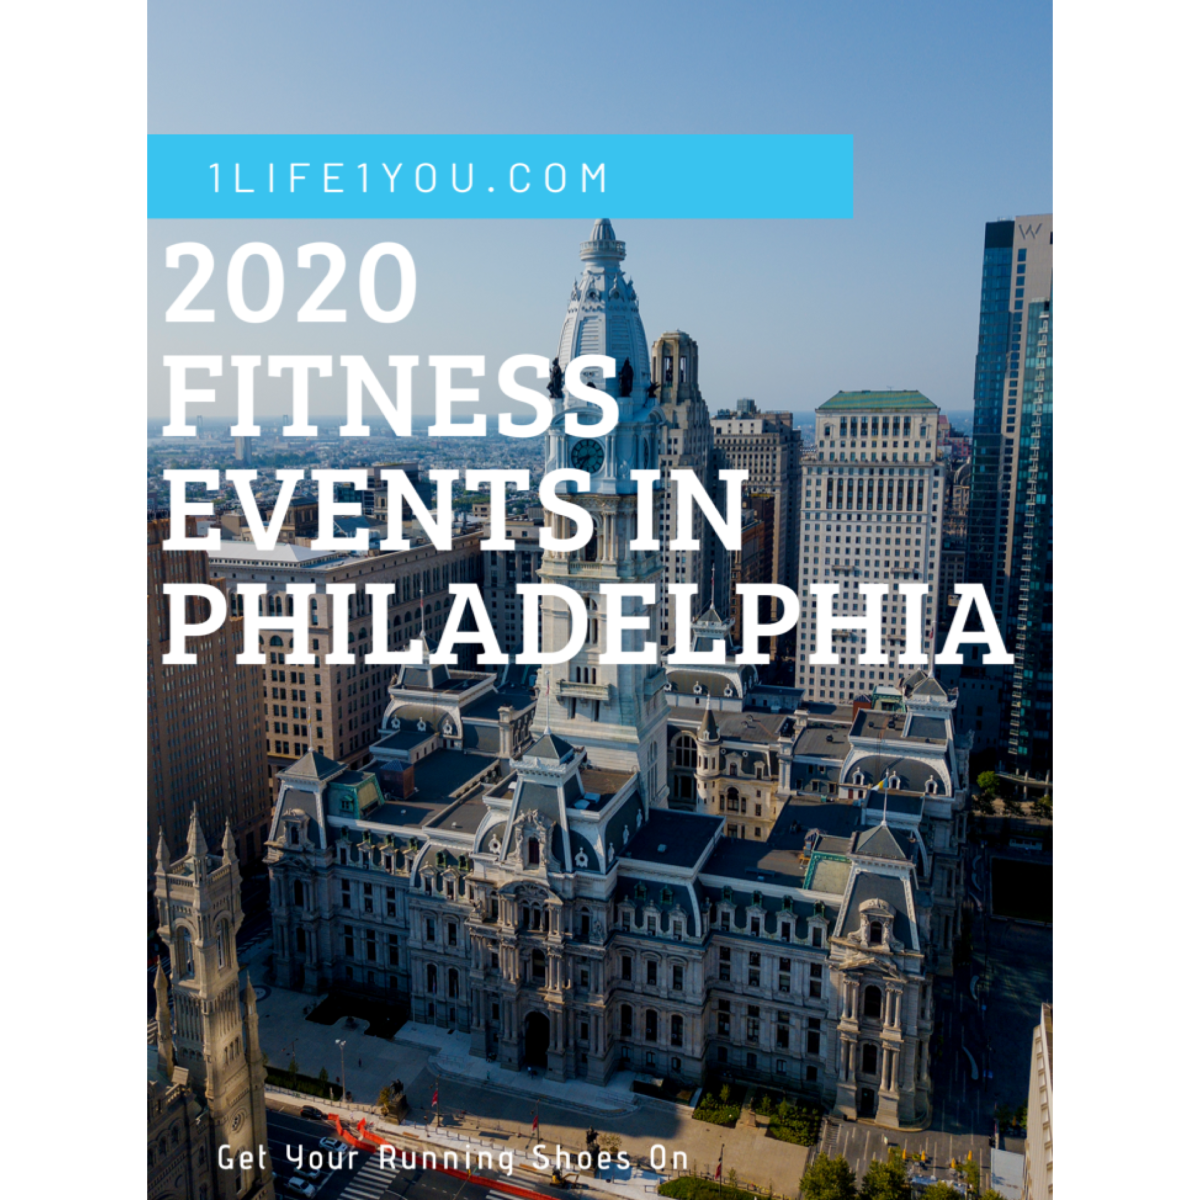 Philly Fitness Events